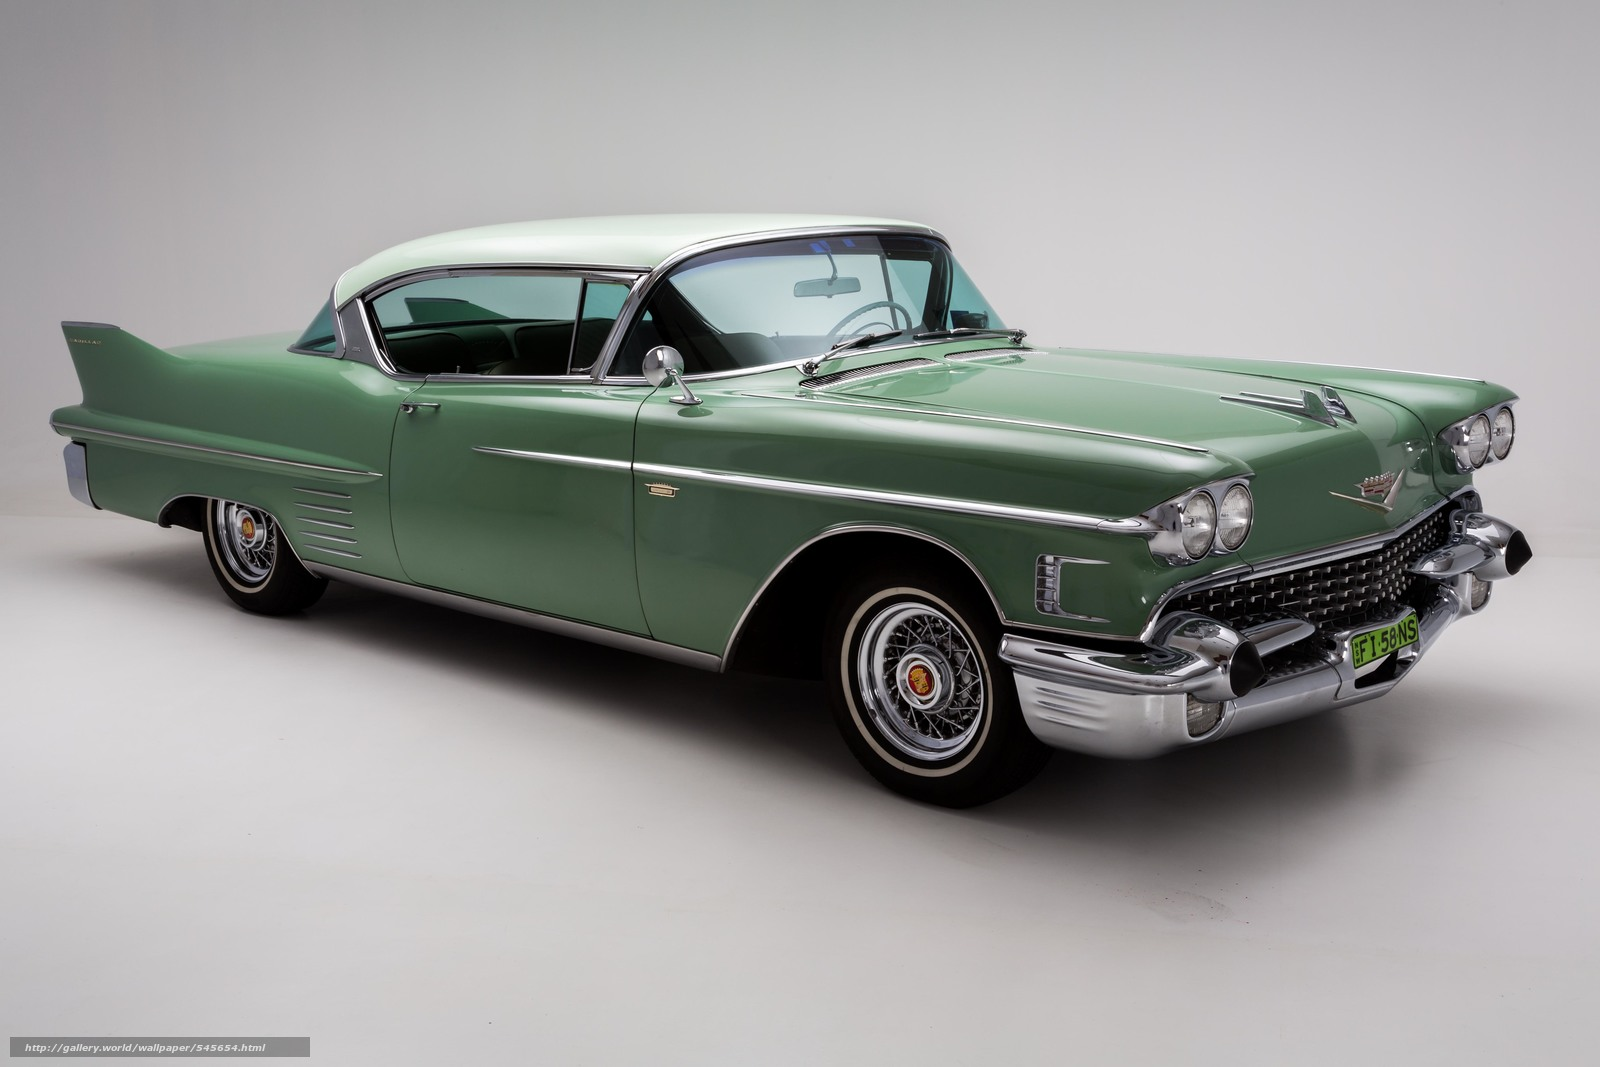 Download wallpaper cadillac deville 1958 free desktop wallpaper in the resolution 5625x3750 picture 545654